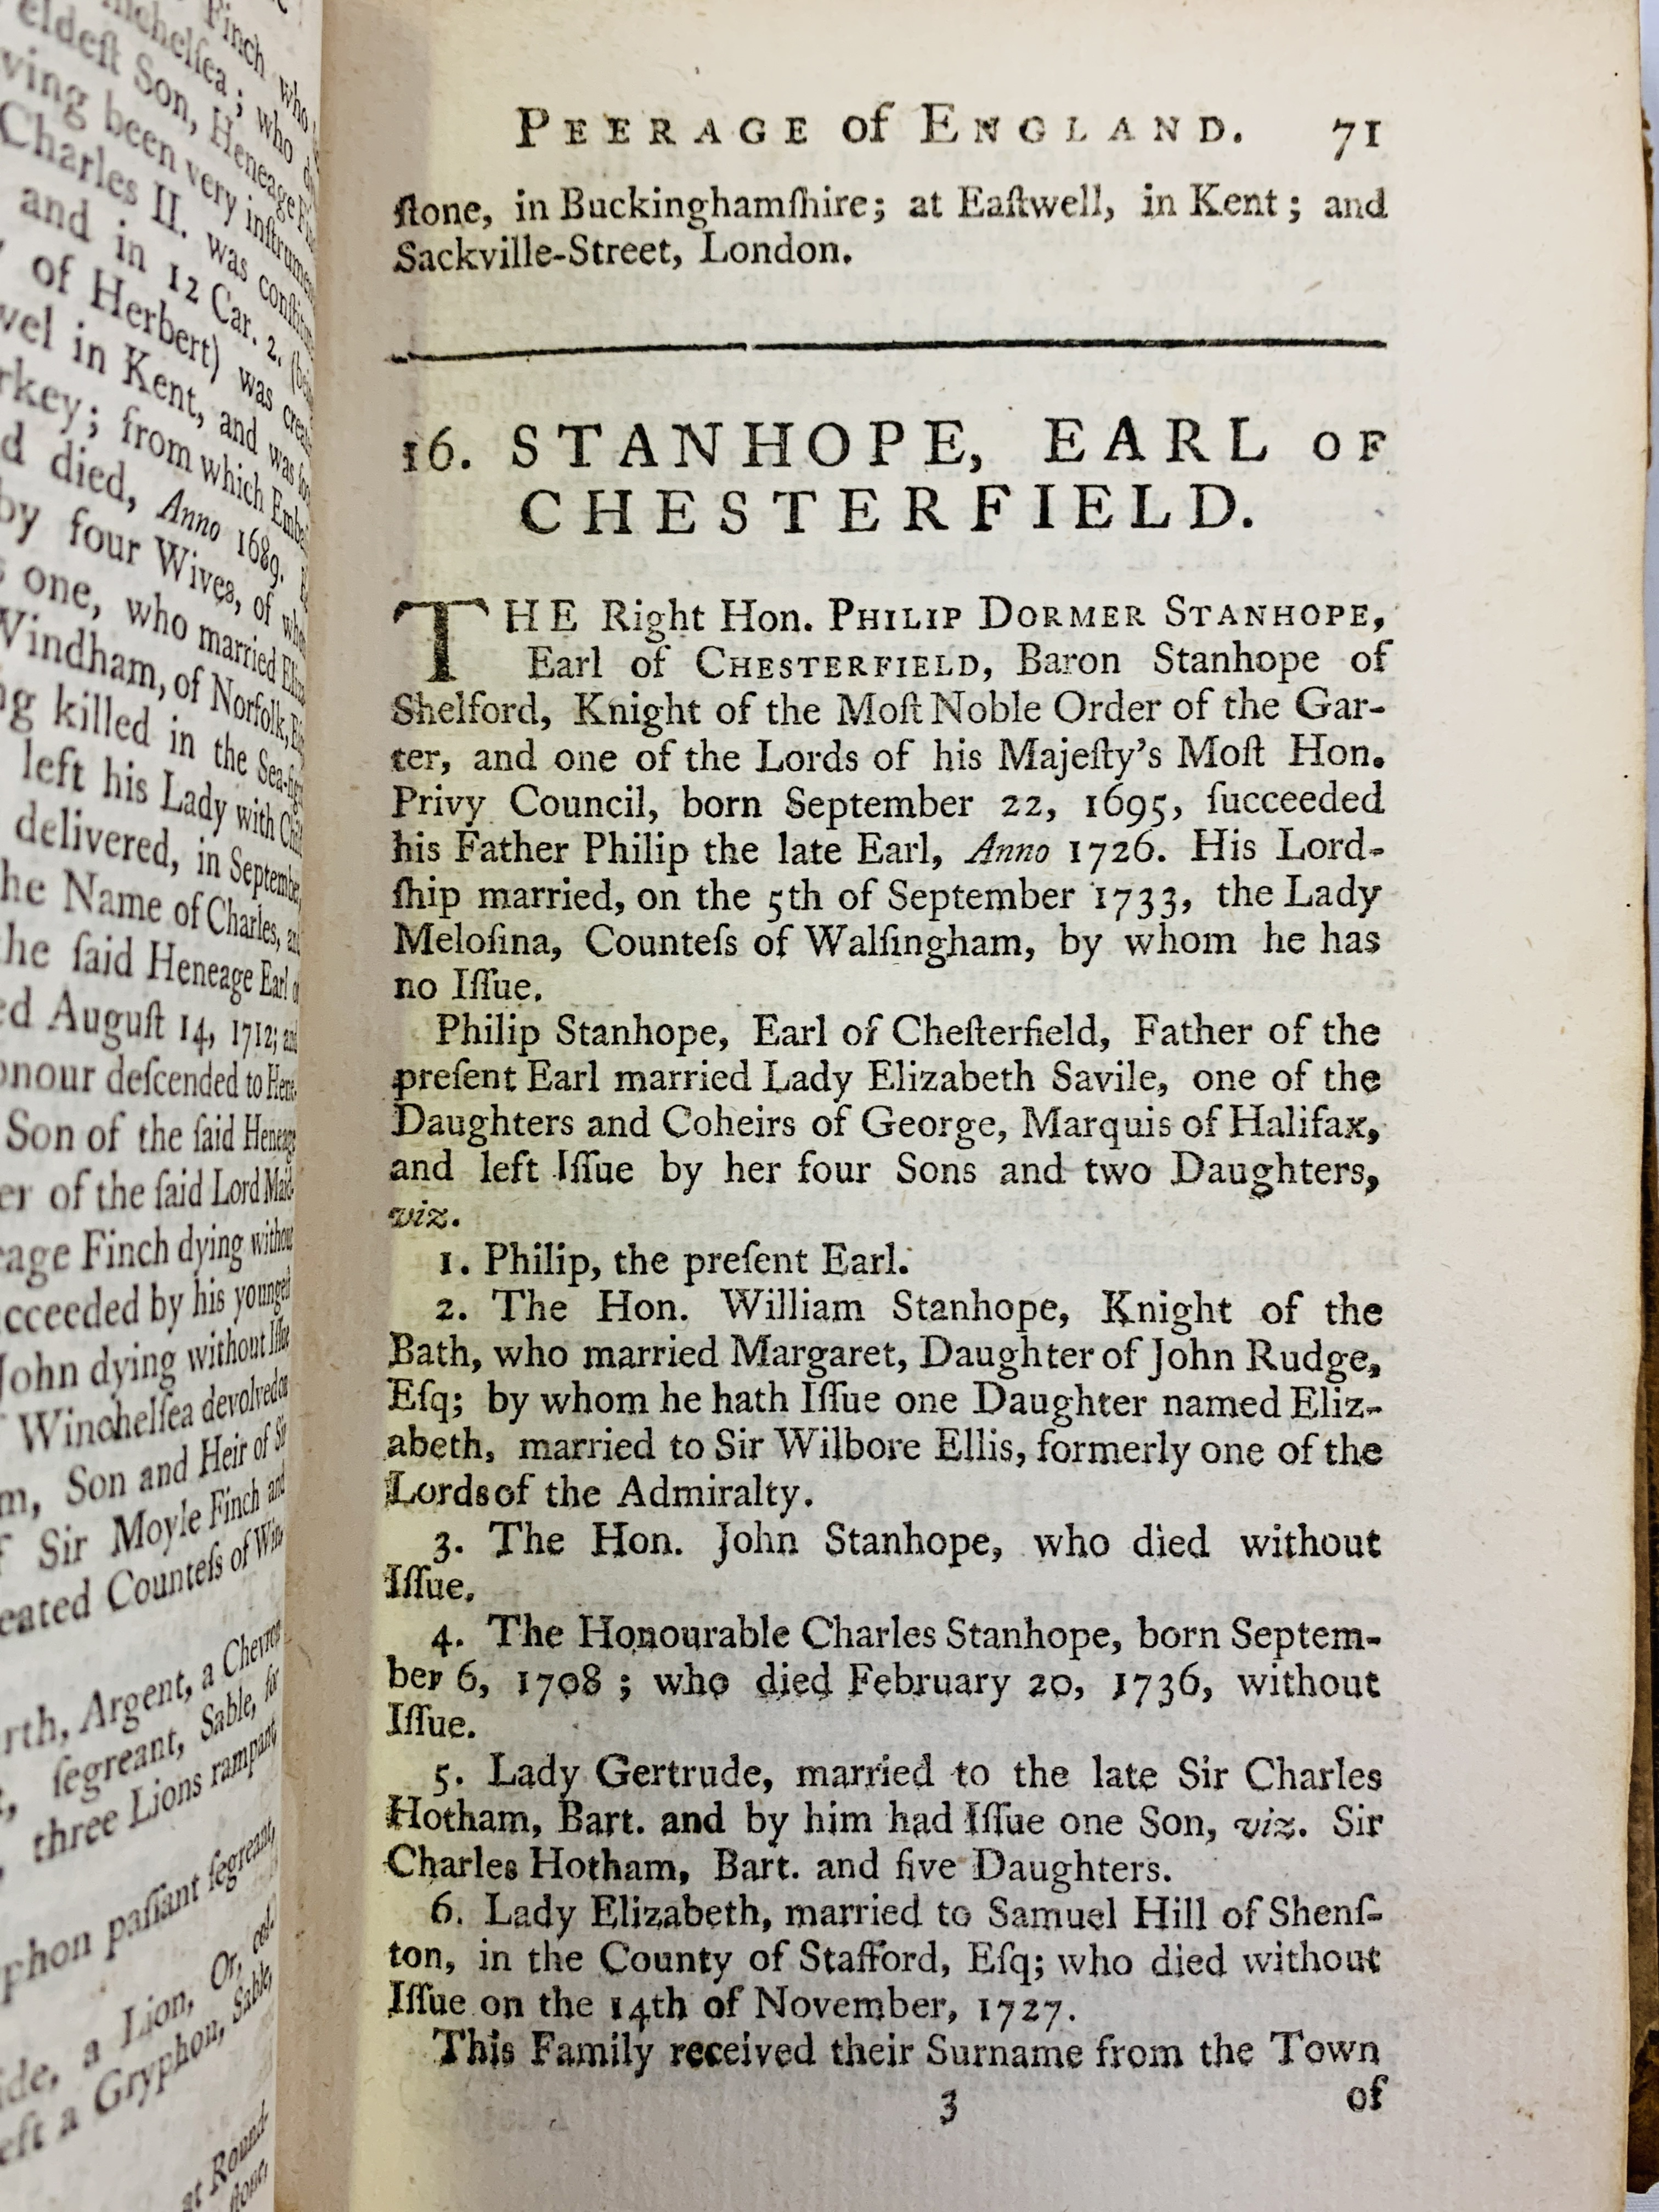 A Short View of the Families of the Present English Nobility, 1758 by Mr Salmon - Image 4 of 4